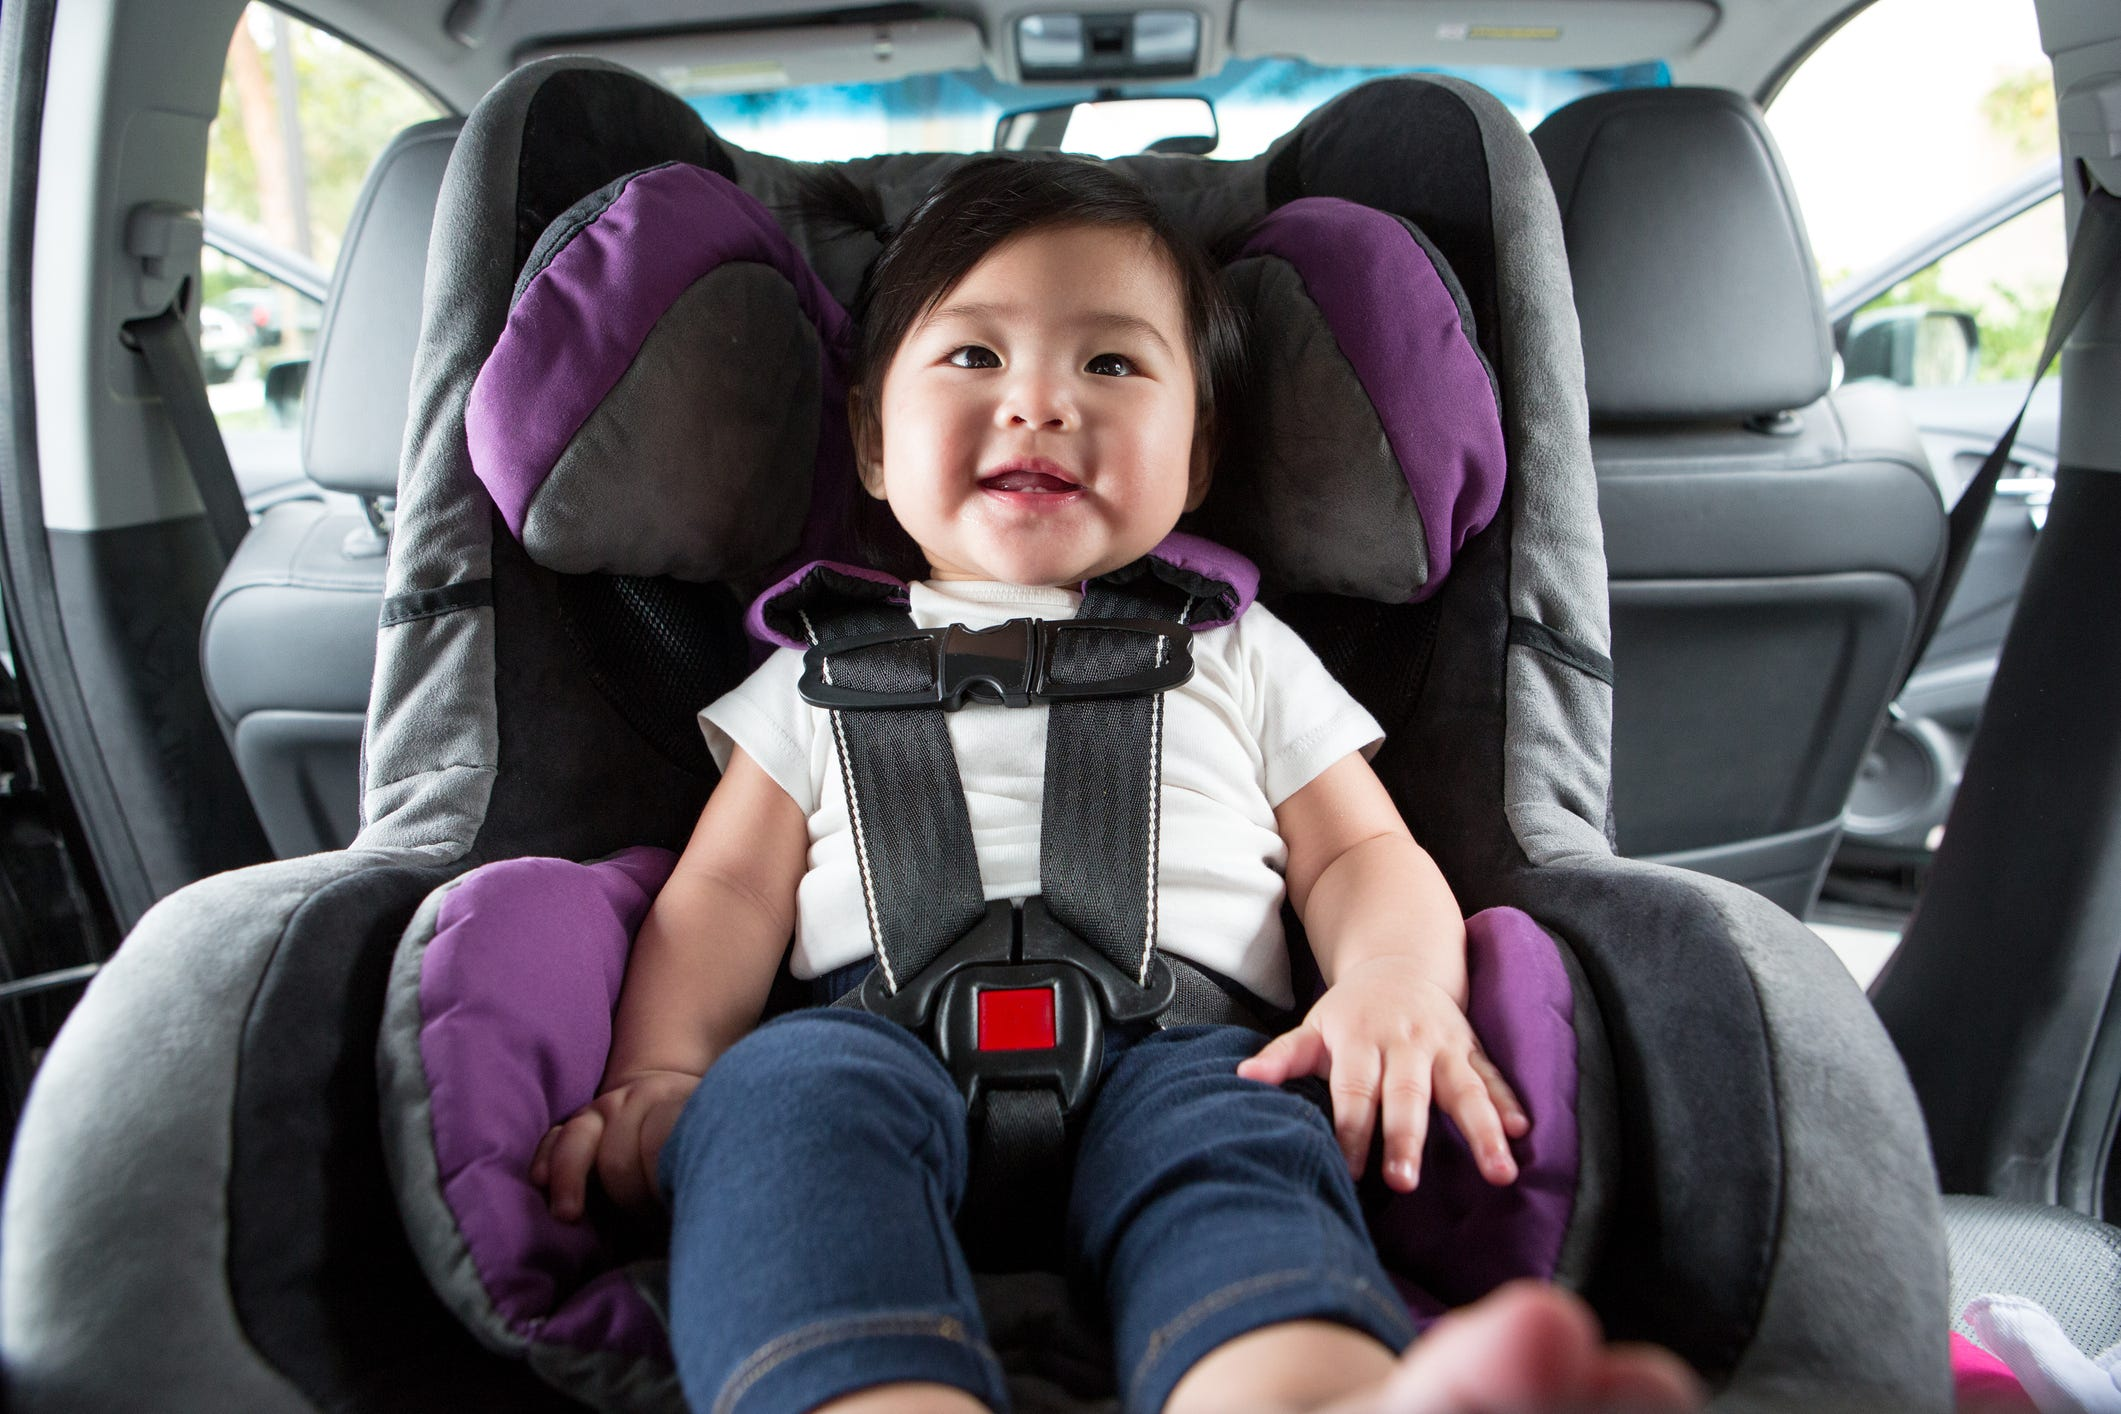 Trade-In Old Car Seats